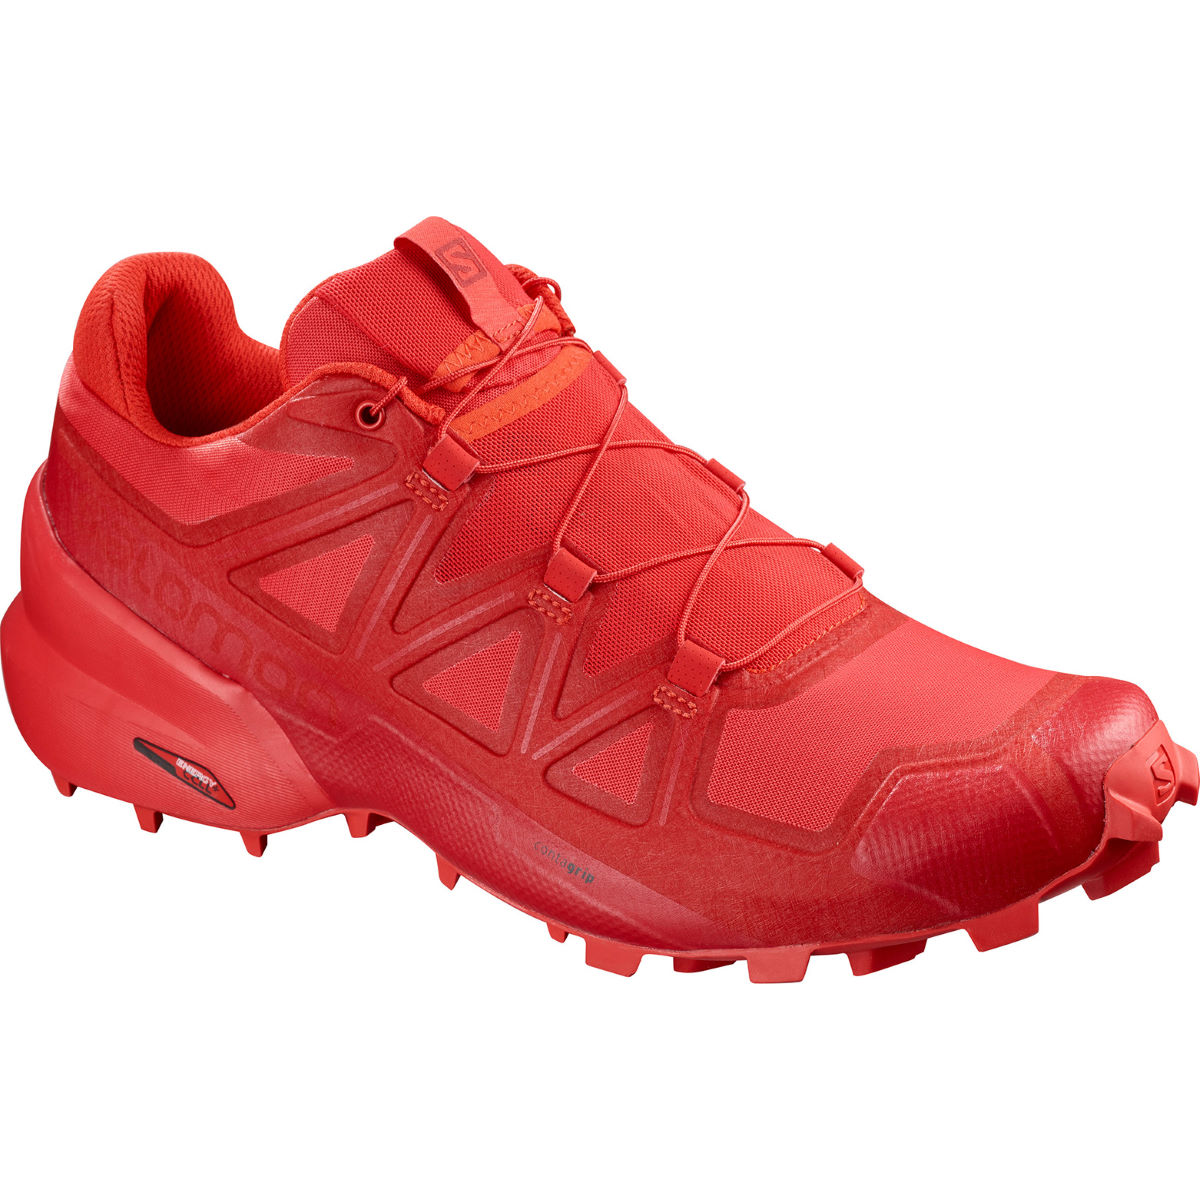 Salomon Speedcross 5 Shoes - UK 12 High Risk Red | Trail Shoes